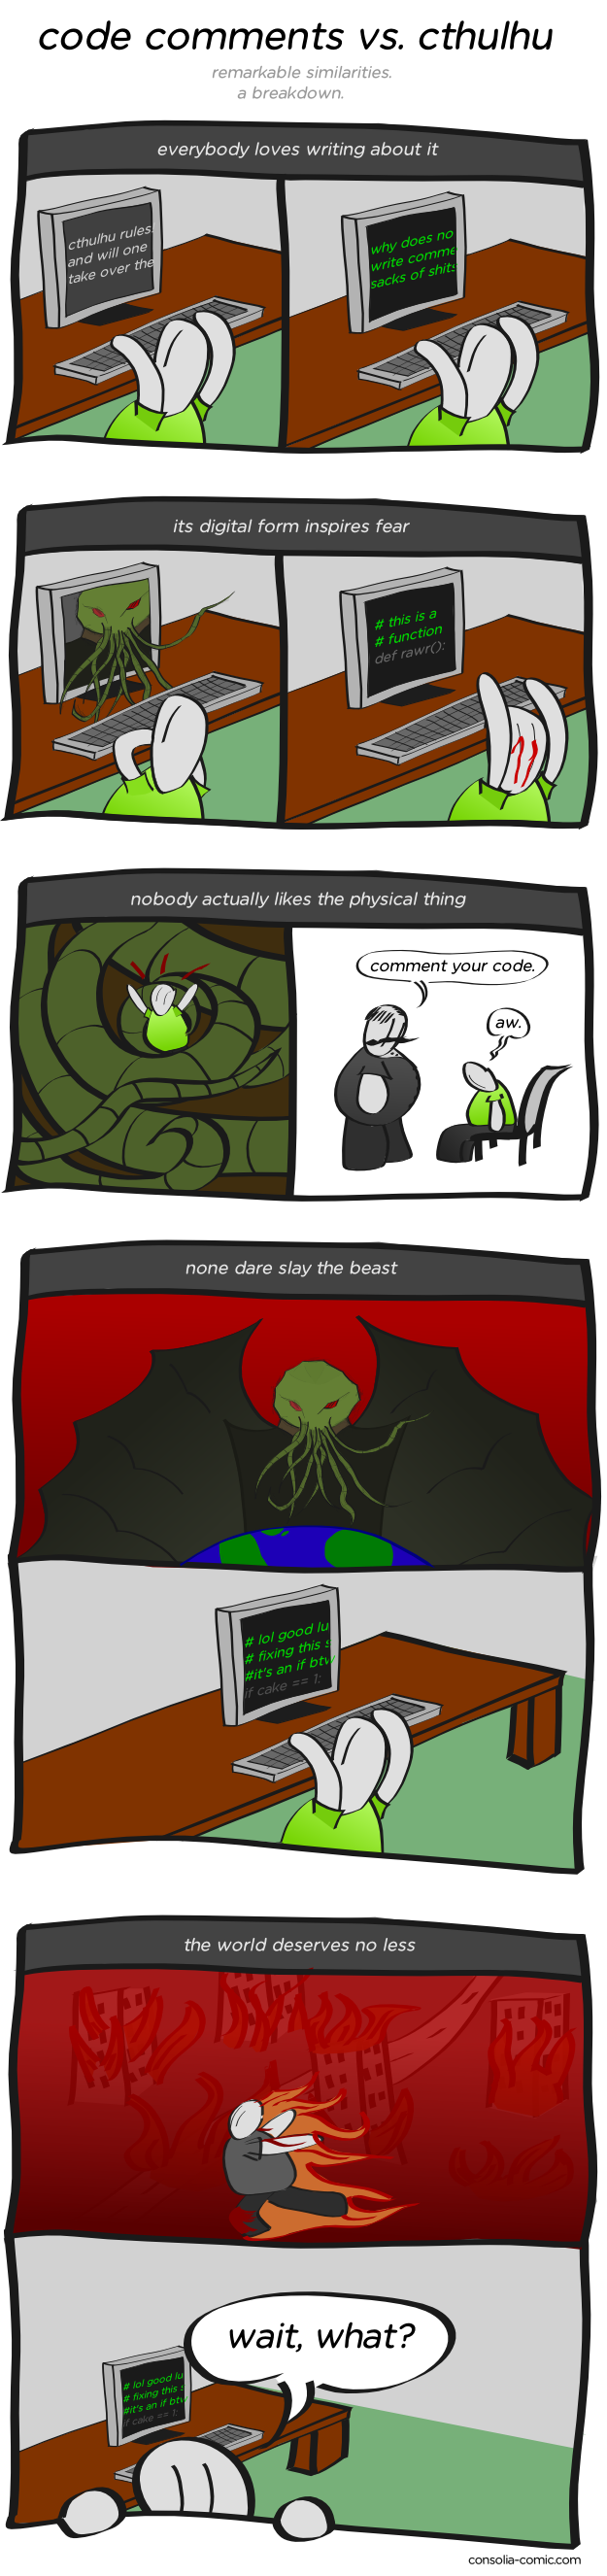 Code Comments vs Cthulhu